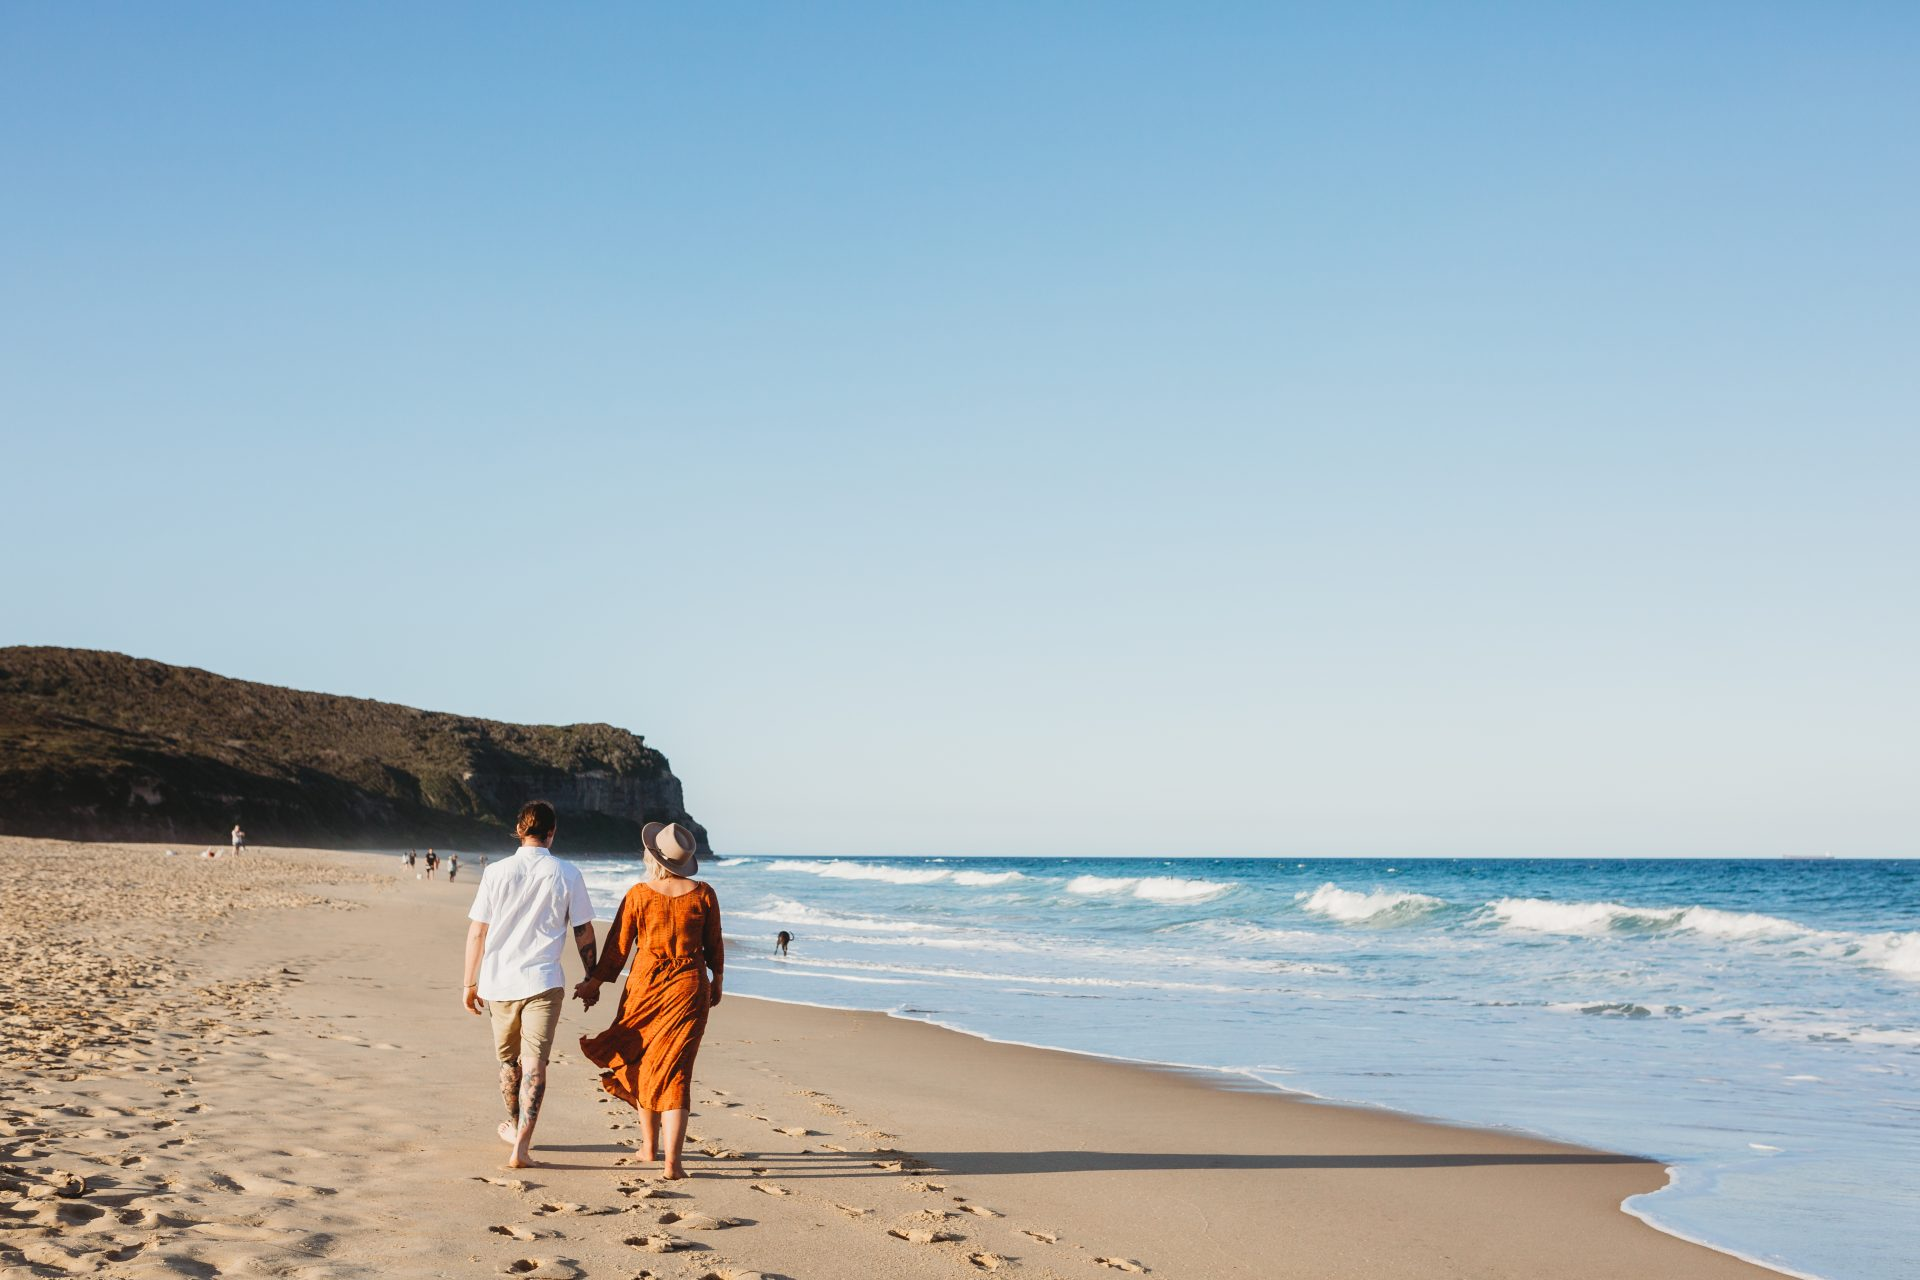 Young man and woman walking on the beach, away from the camera